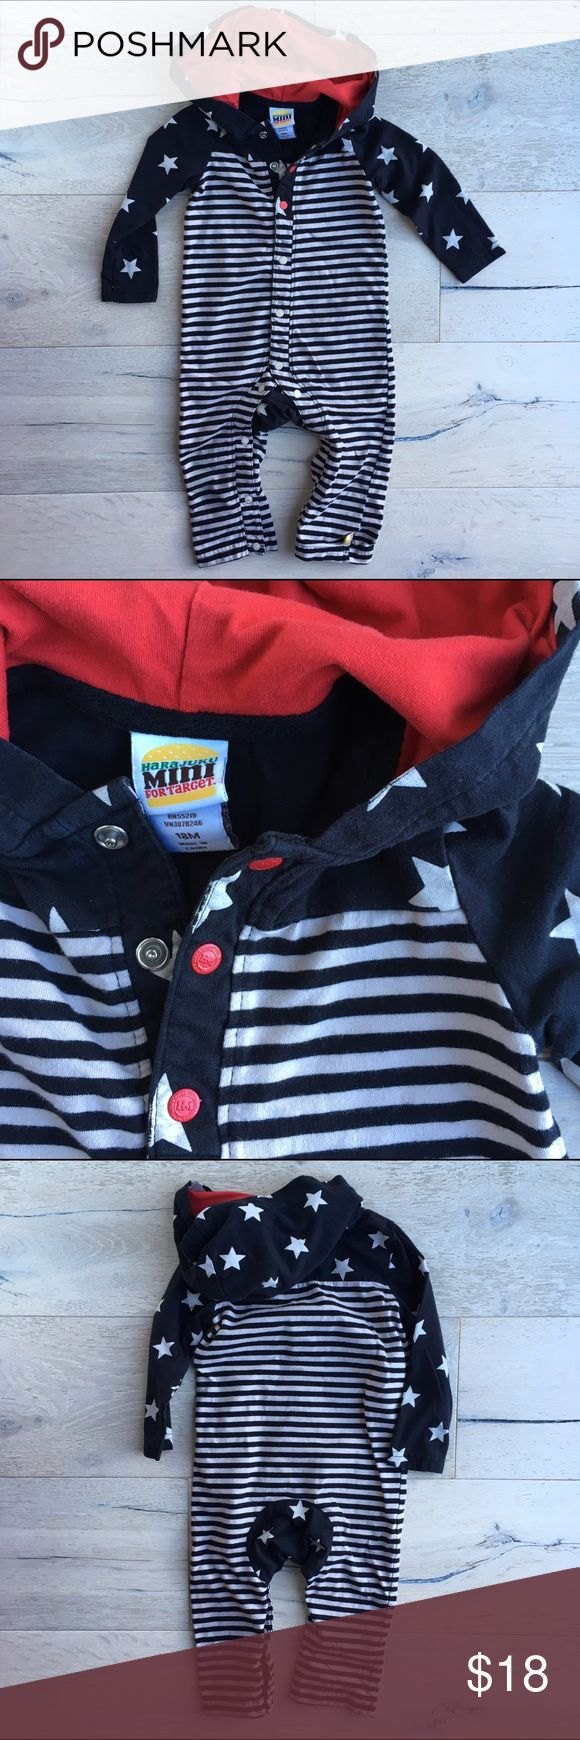 Harajuku Mini Romper with Hoodie, by Gwen Stefani Harajuku Mini Romper with Hoodie, rare item designed by Gwen Stefani. Size 18 months.  Rockabilly styling with stripes and stars in red, black and a very light cream.  Snaps up from inside legs to chin.  Comes from a smoke free, pet free home.  Gently used and in great condition. Harajuku Mini One Pieces Bodysuits